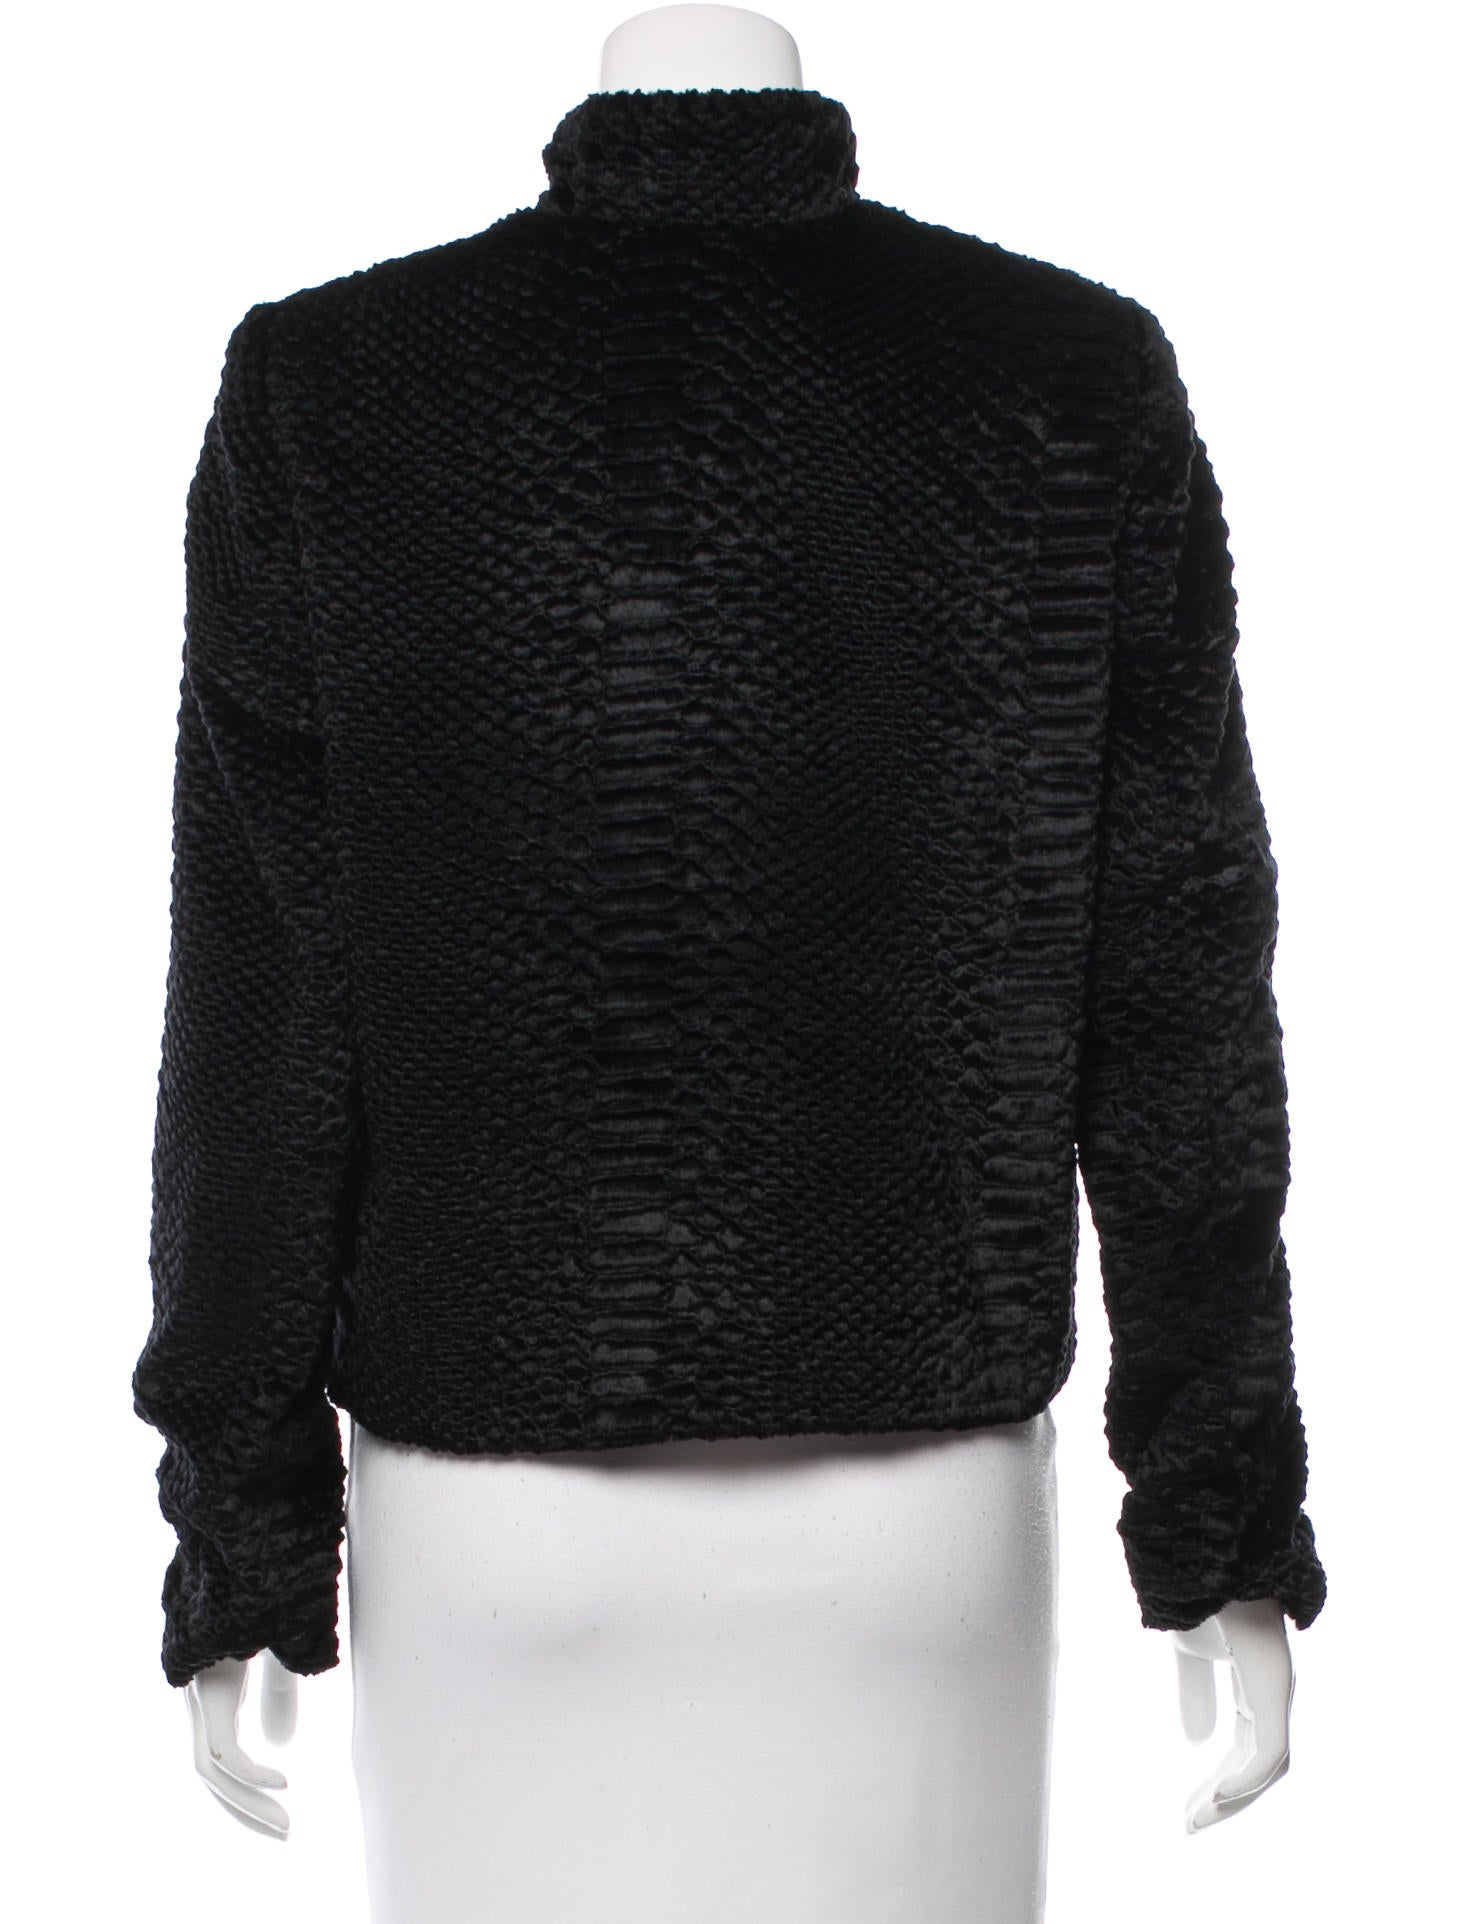 Discover faux fur jackets and coats on sale for women at ASOS. Shop the latest collection of faux fur jackets & coats for women on sale. your browser is not supported. To use ASOS, we recommend using the latest versions of Chrome, Firefox, Safari or Internet Explorer Only Sanna Short Quilted Jacket.